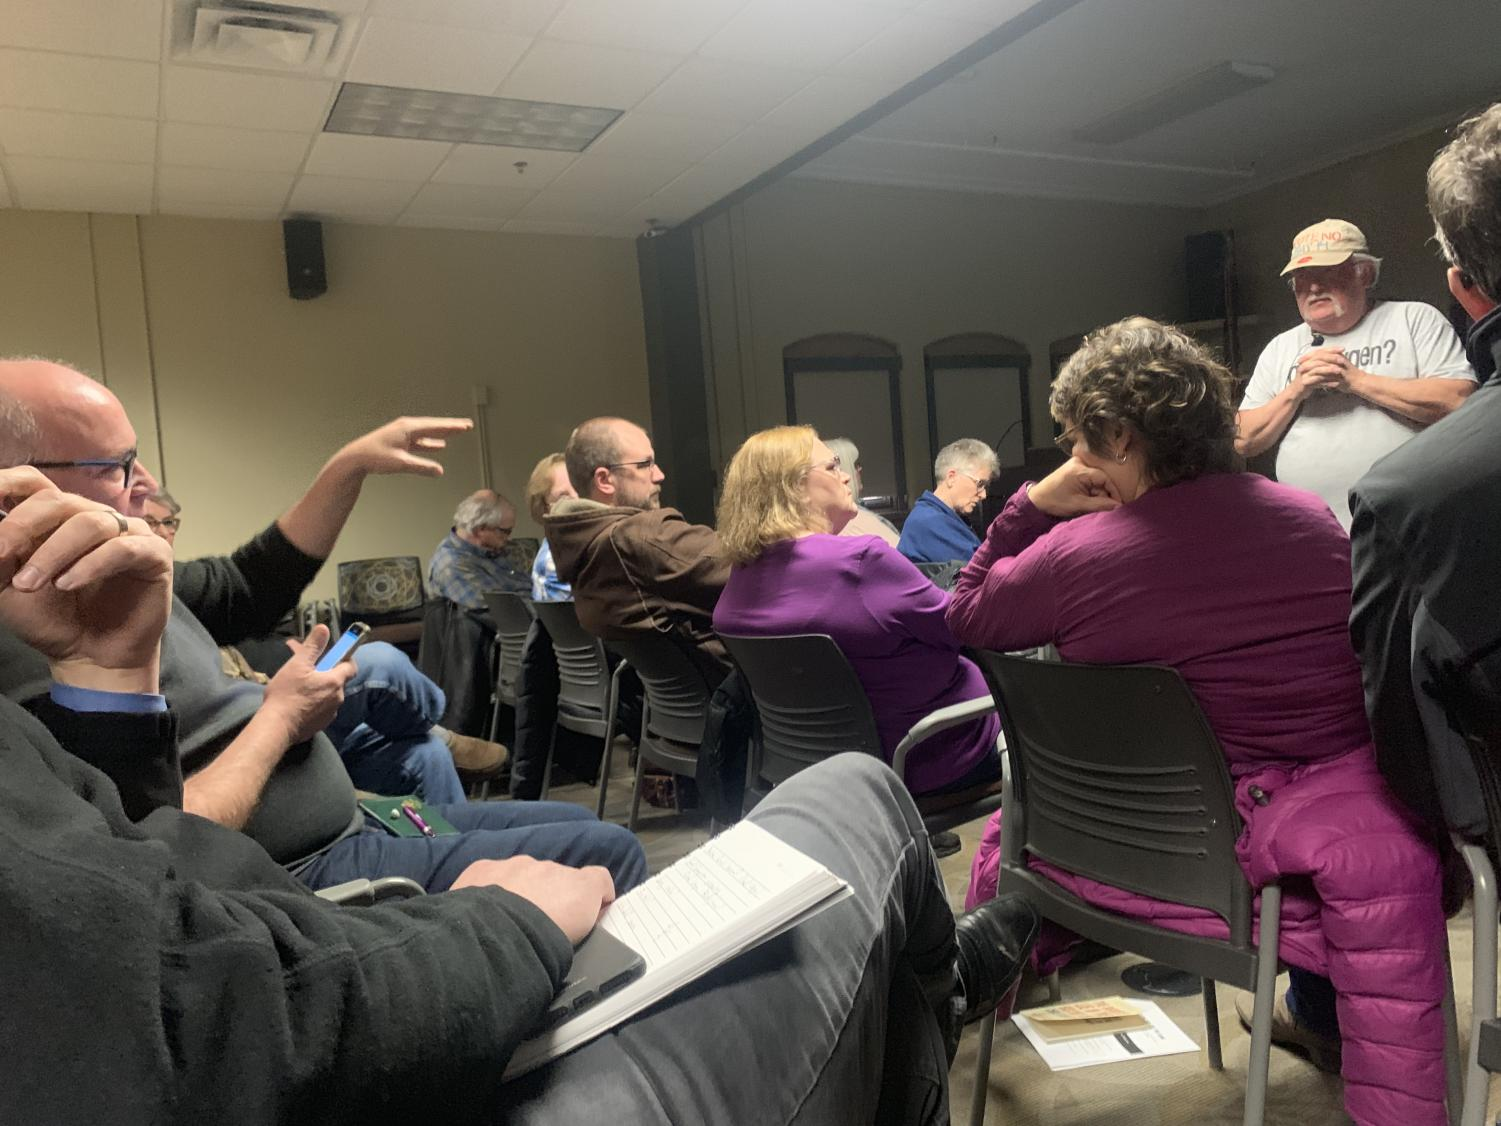 COPE (Concerned Owatonnans for Public Education) meeting discussing reasons for to vote against the upcoming referendum